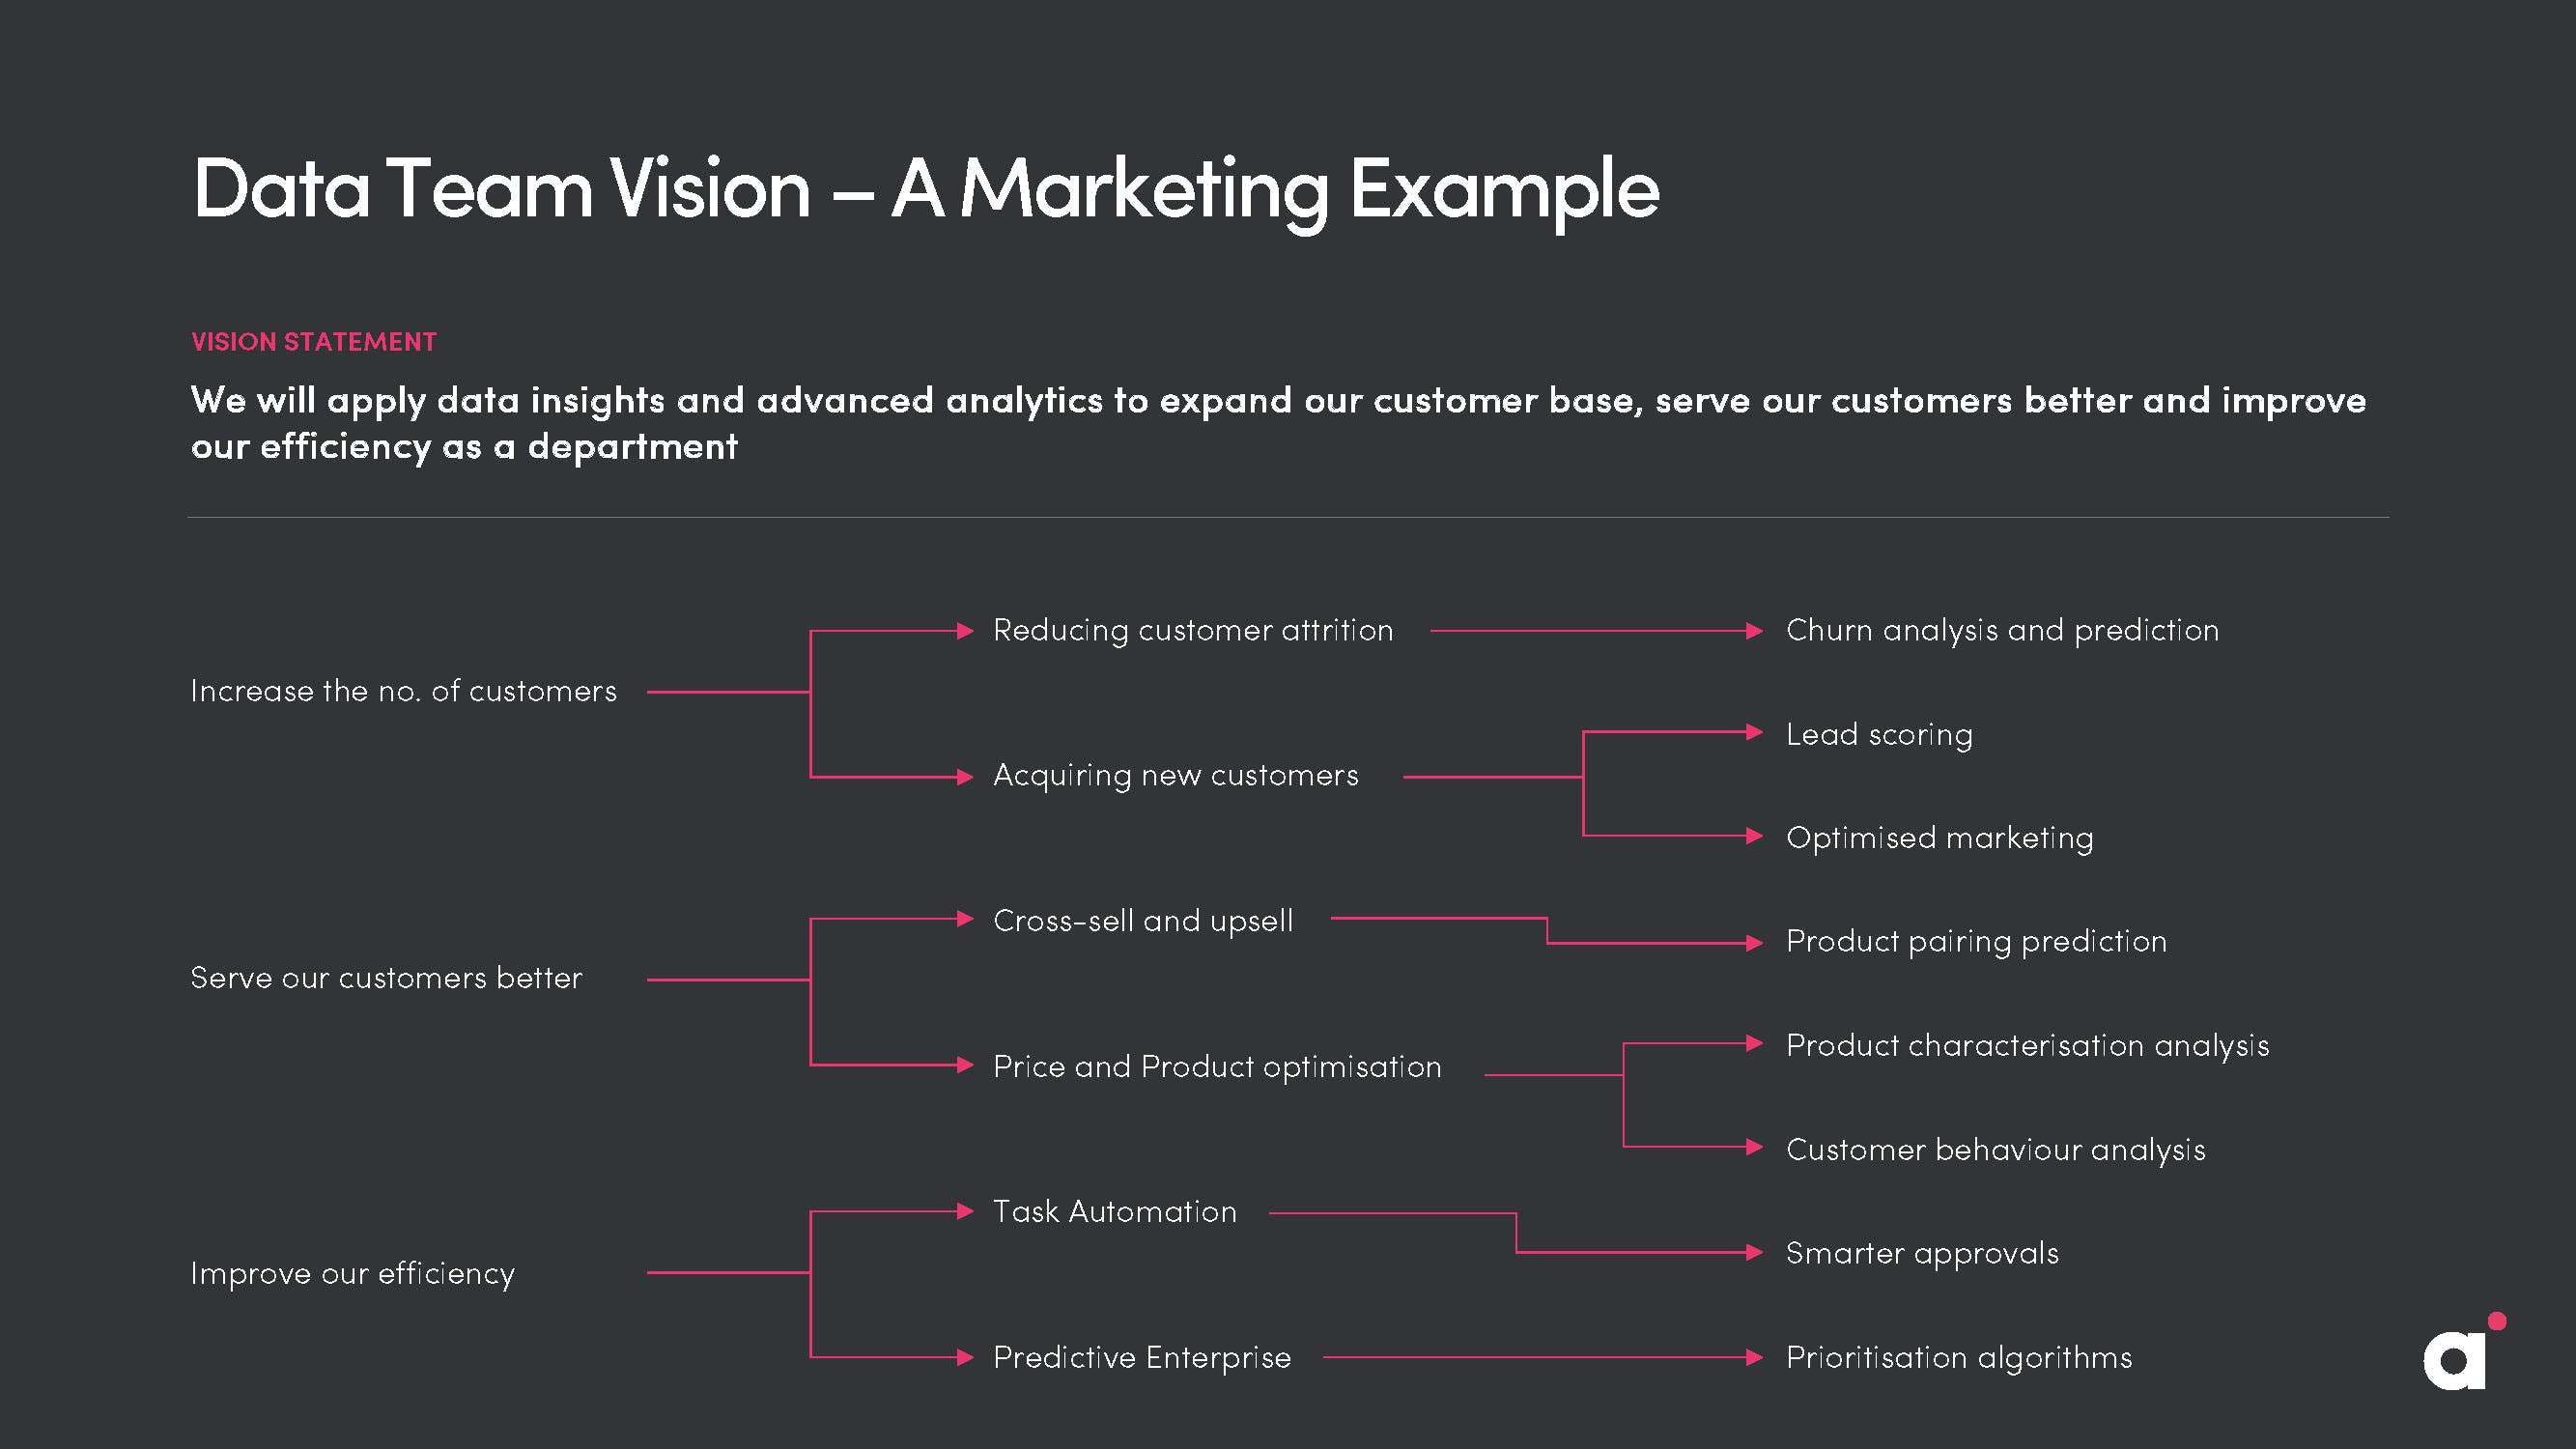 Data Team Vision - an example from marketing